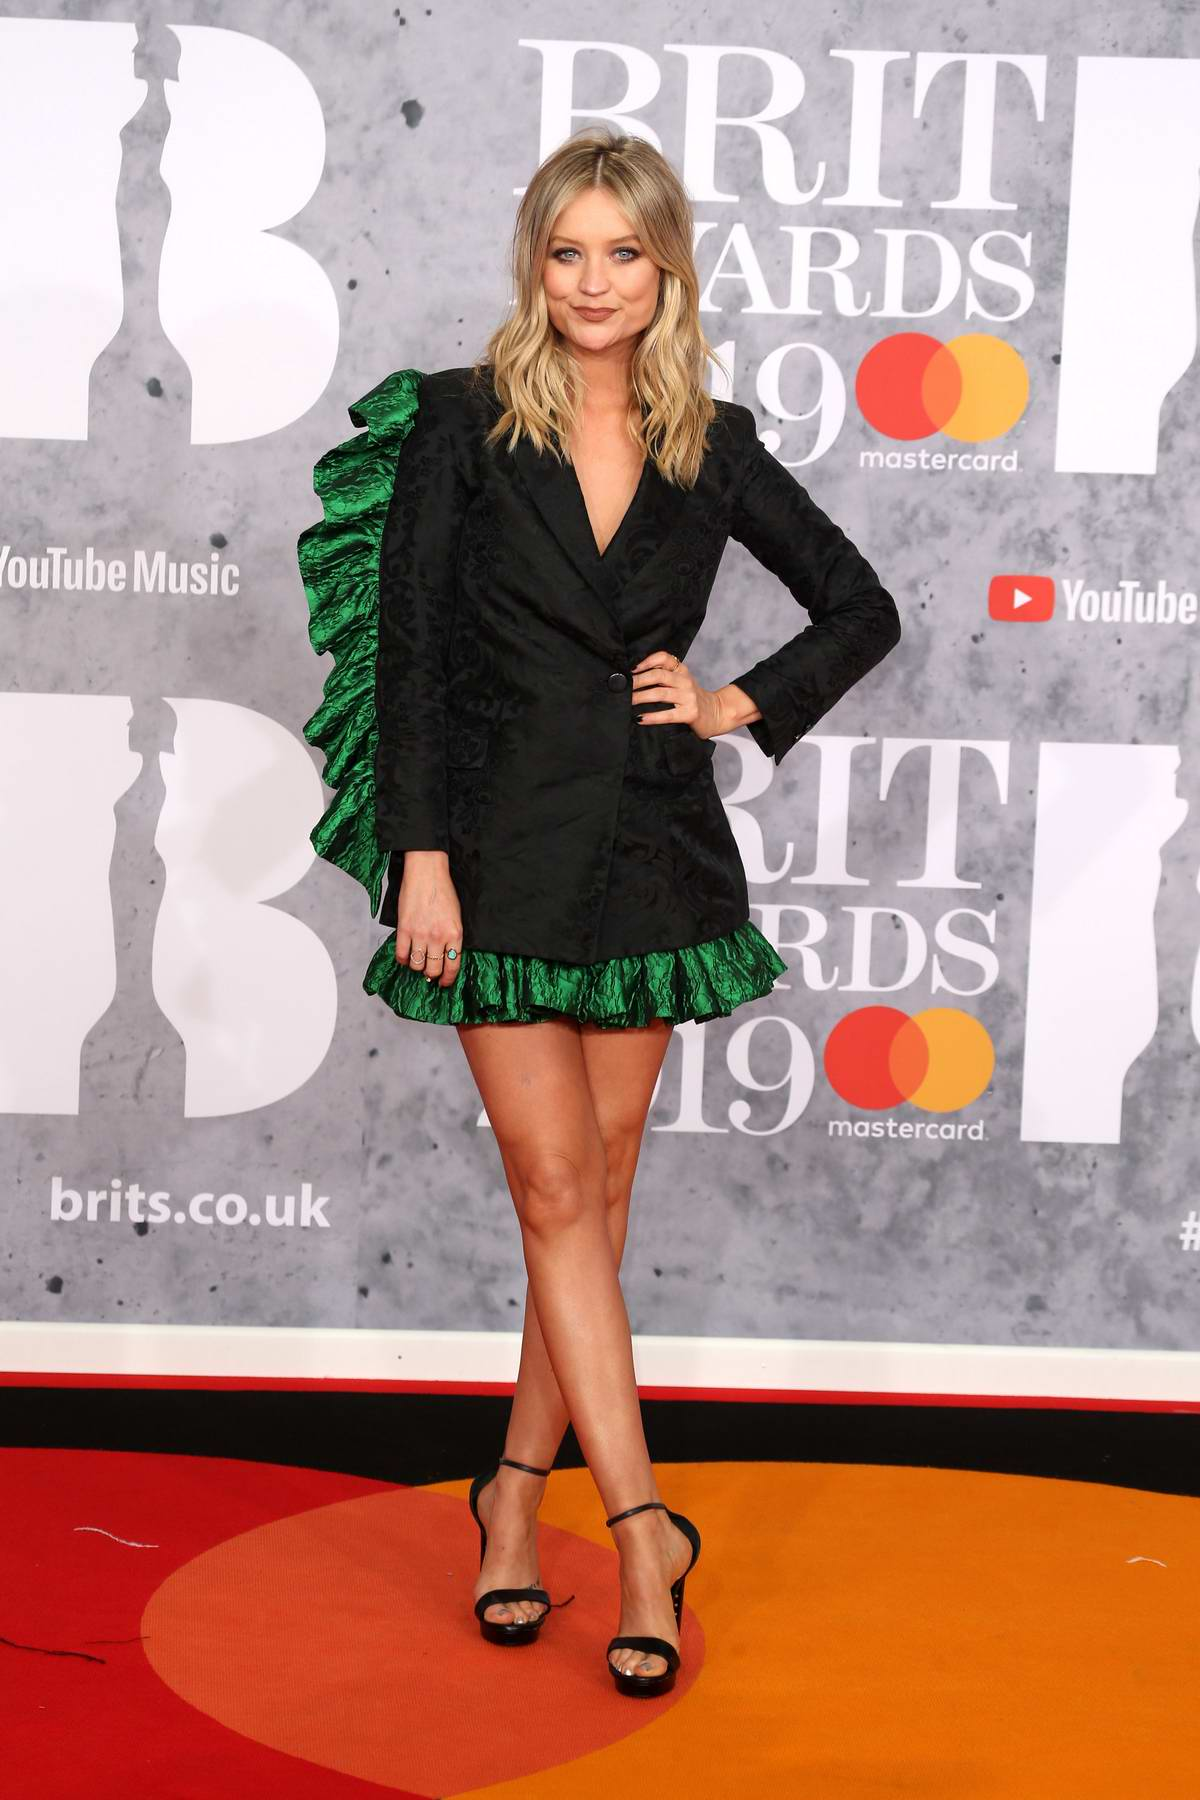 Laura Whitmore attends The BRIT Awards 2019 held at The O2 Arena in London, UK